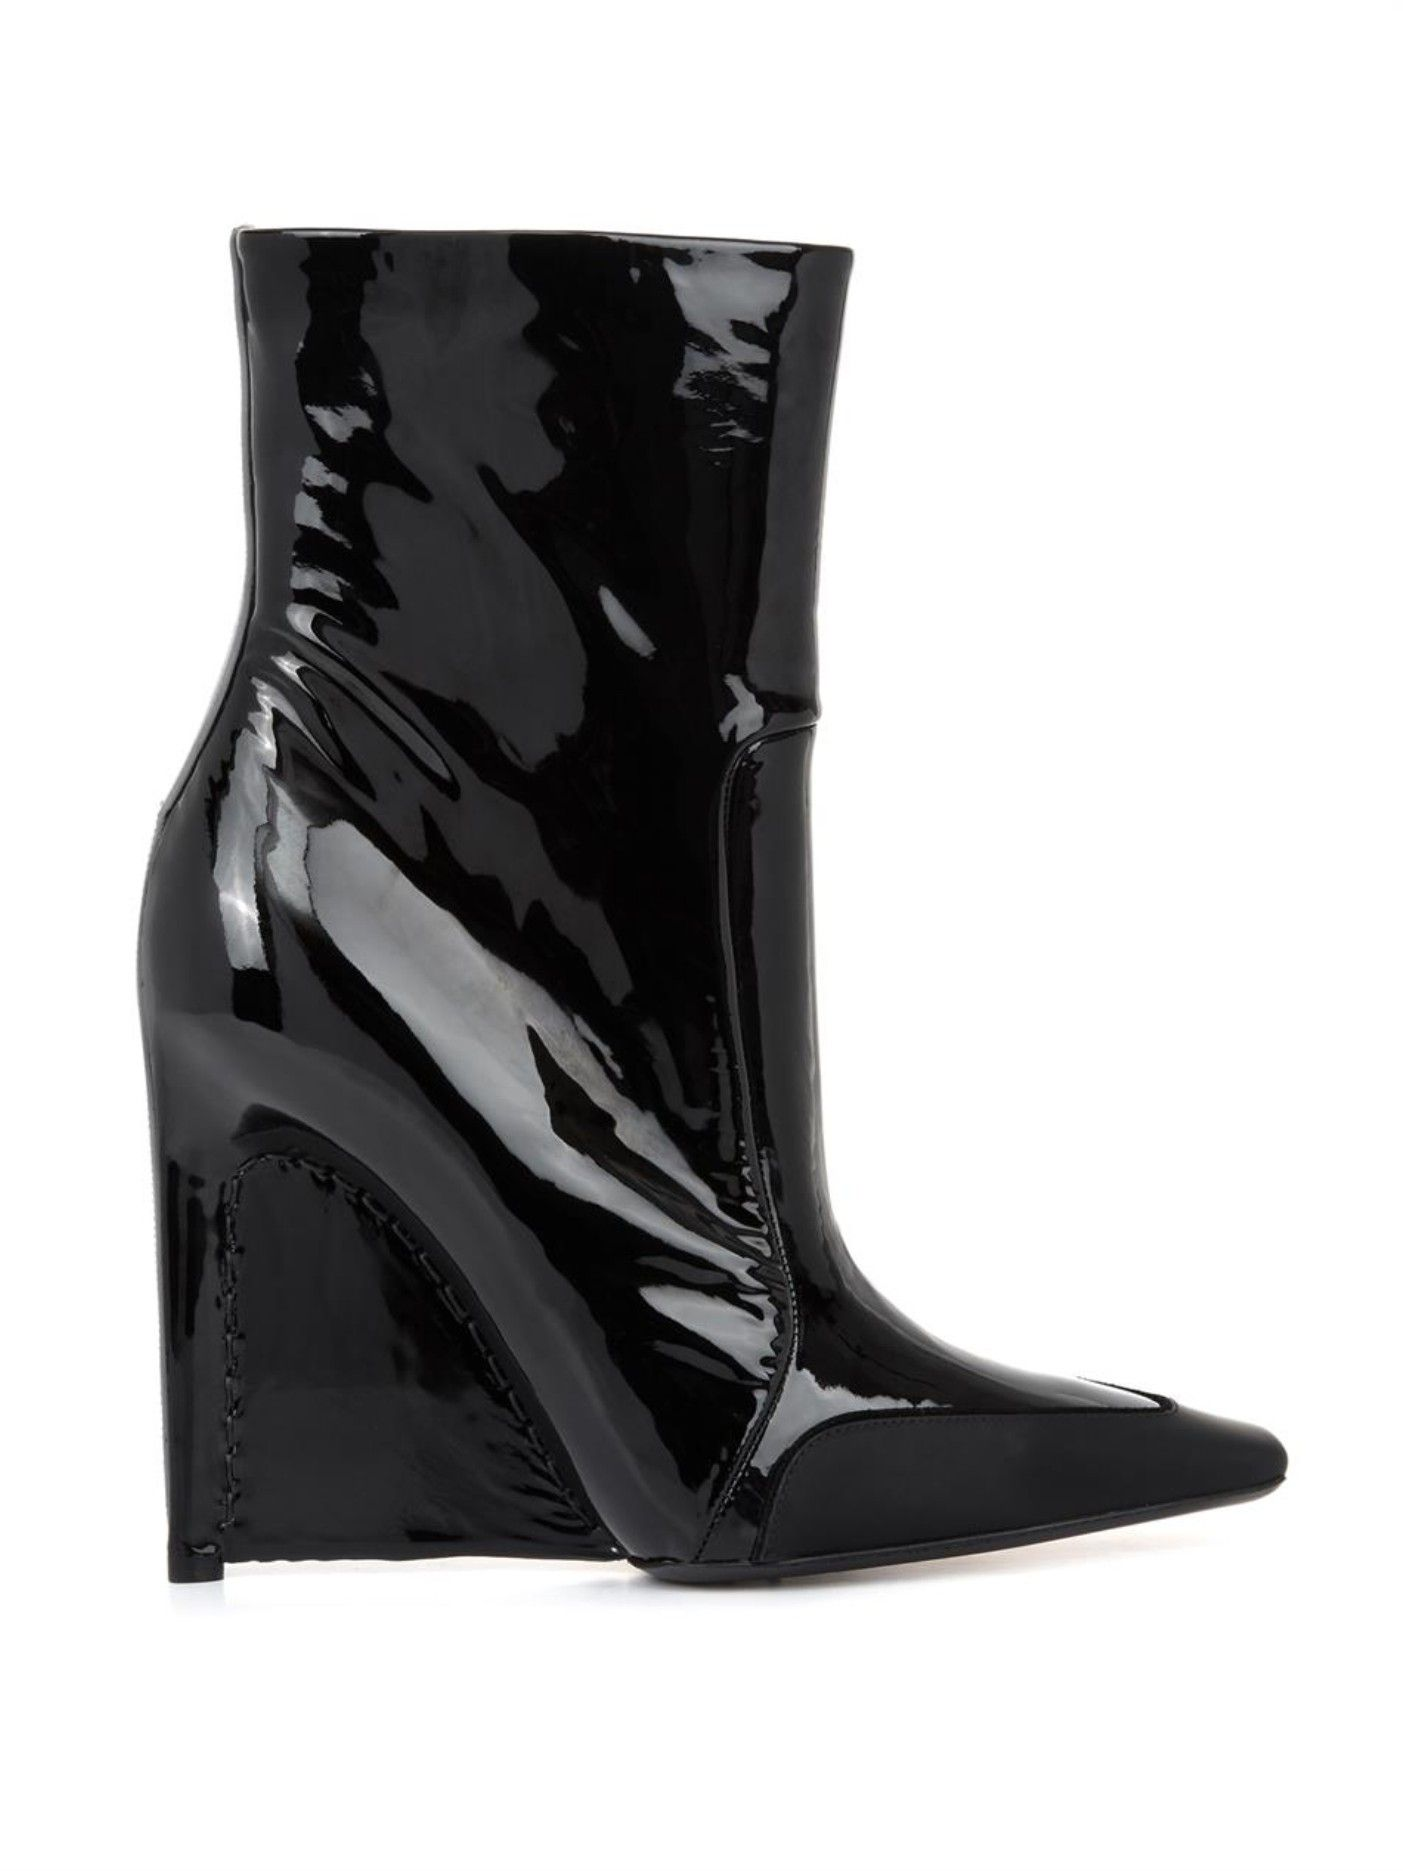 sale Inexpensive release dates cheap price Balenciaga Patent Leather Wedges XfdWdcuM0